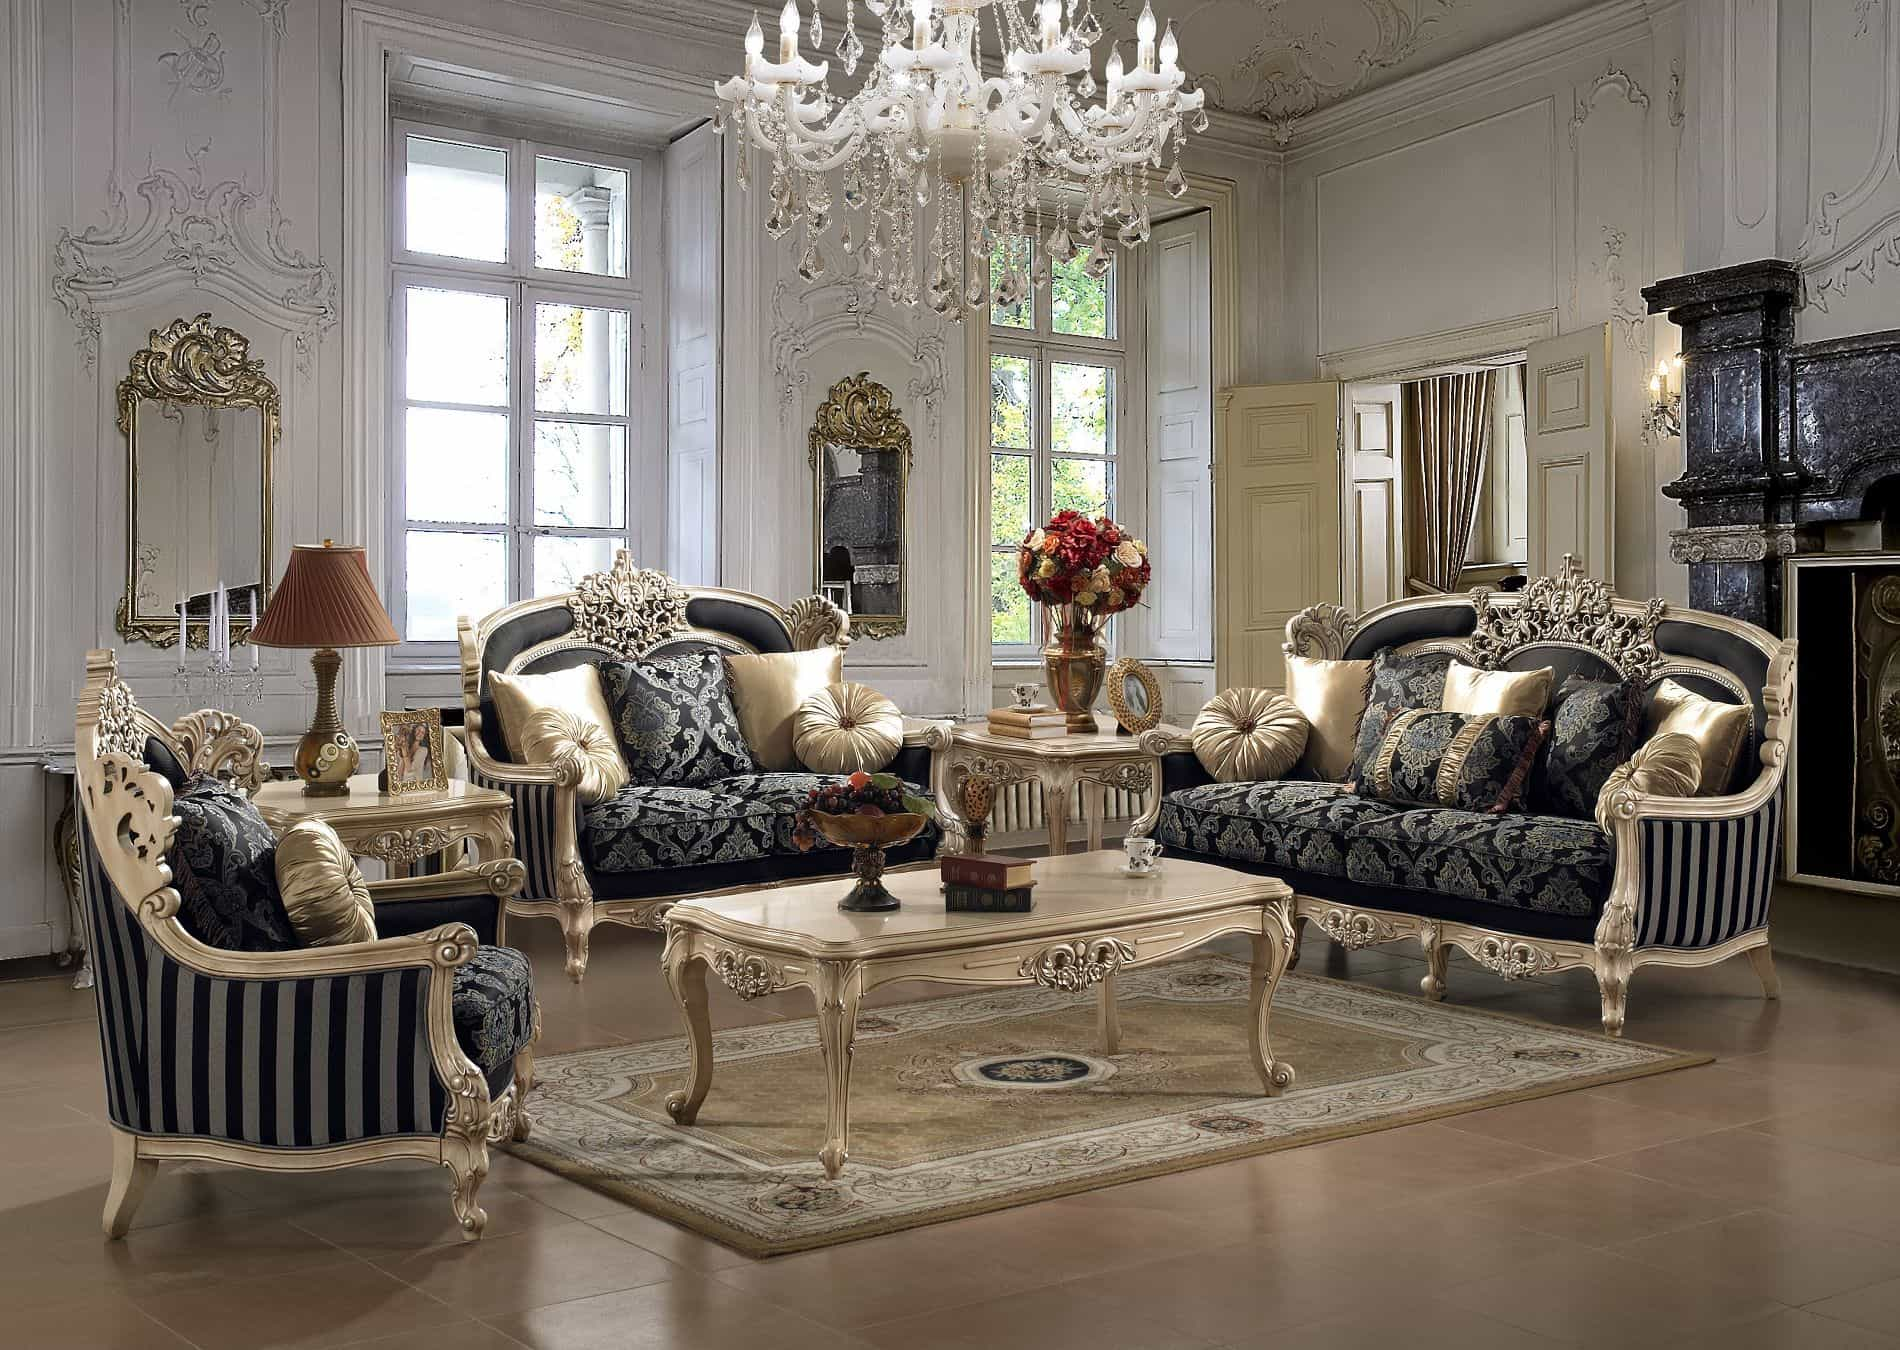 victorian living room elegant furniture HUAKFZM